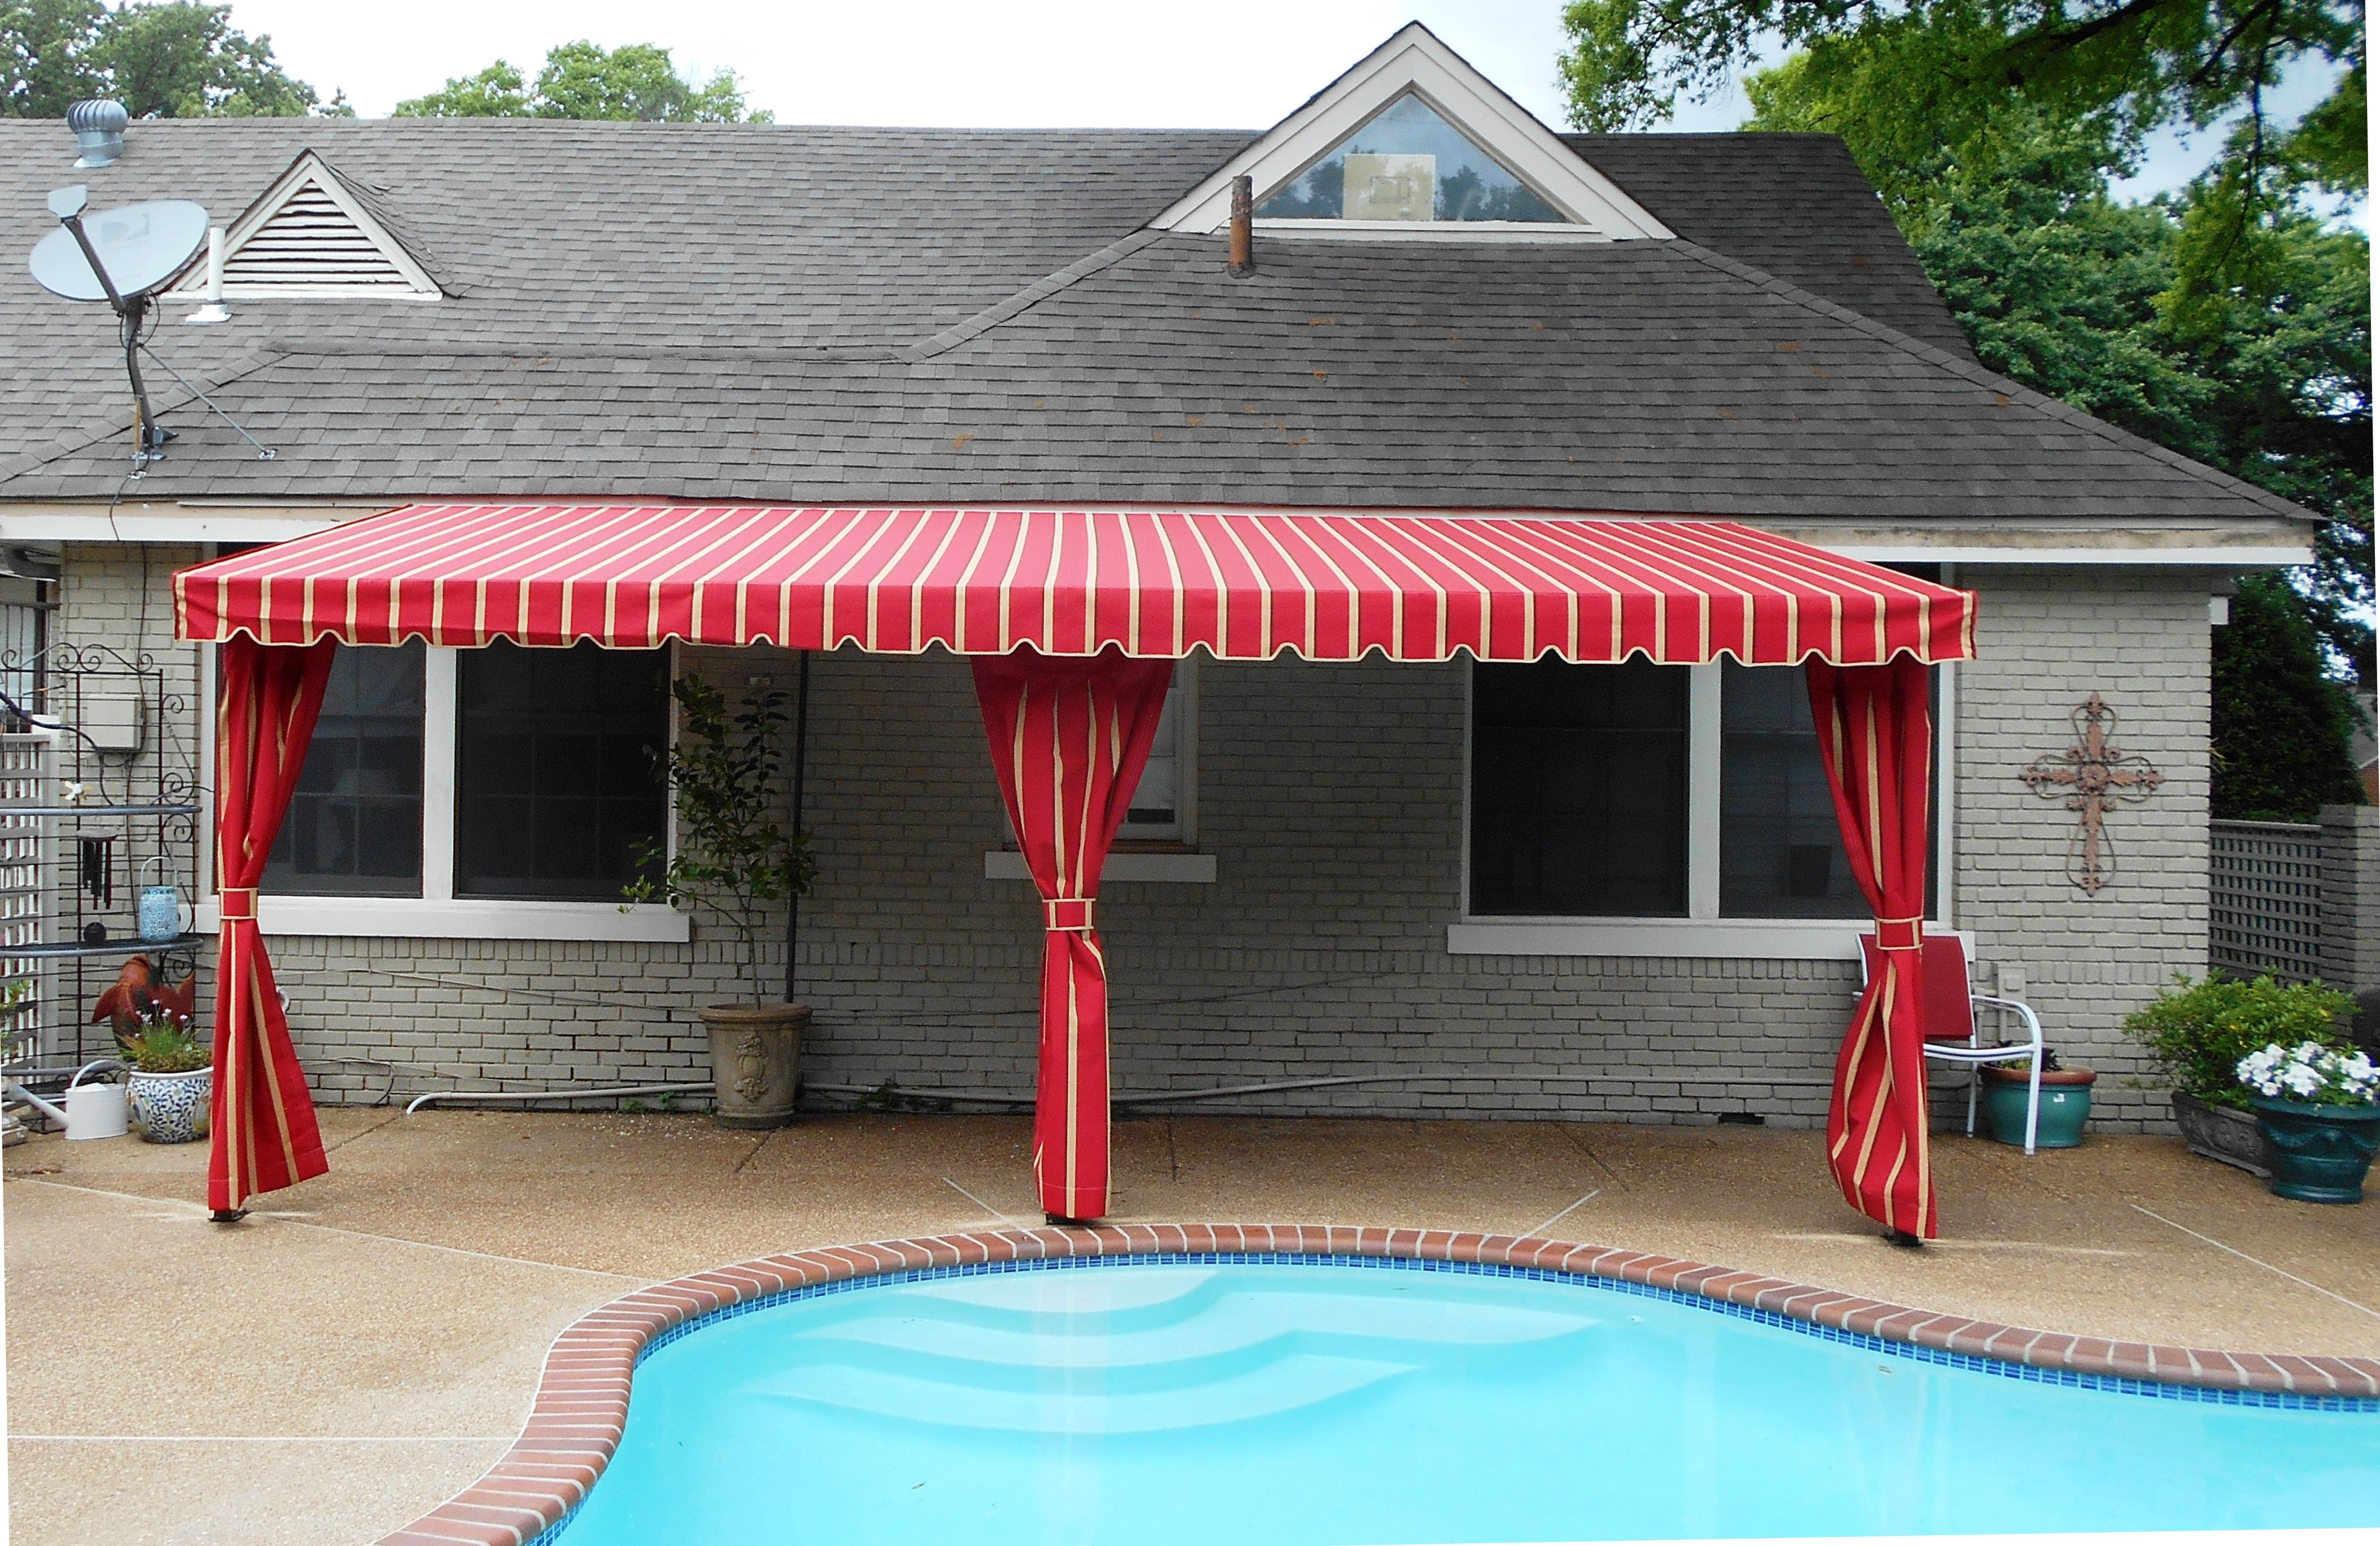 patio of stationary exteriors awnings asheville for nc residential air fabric vent decks gallery awning